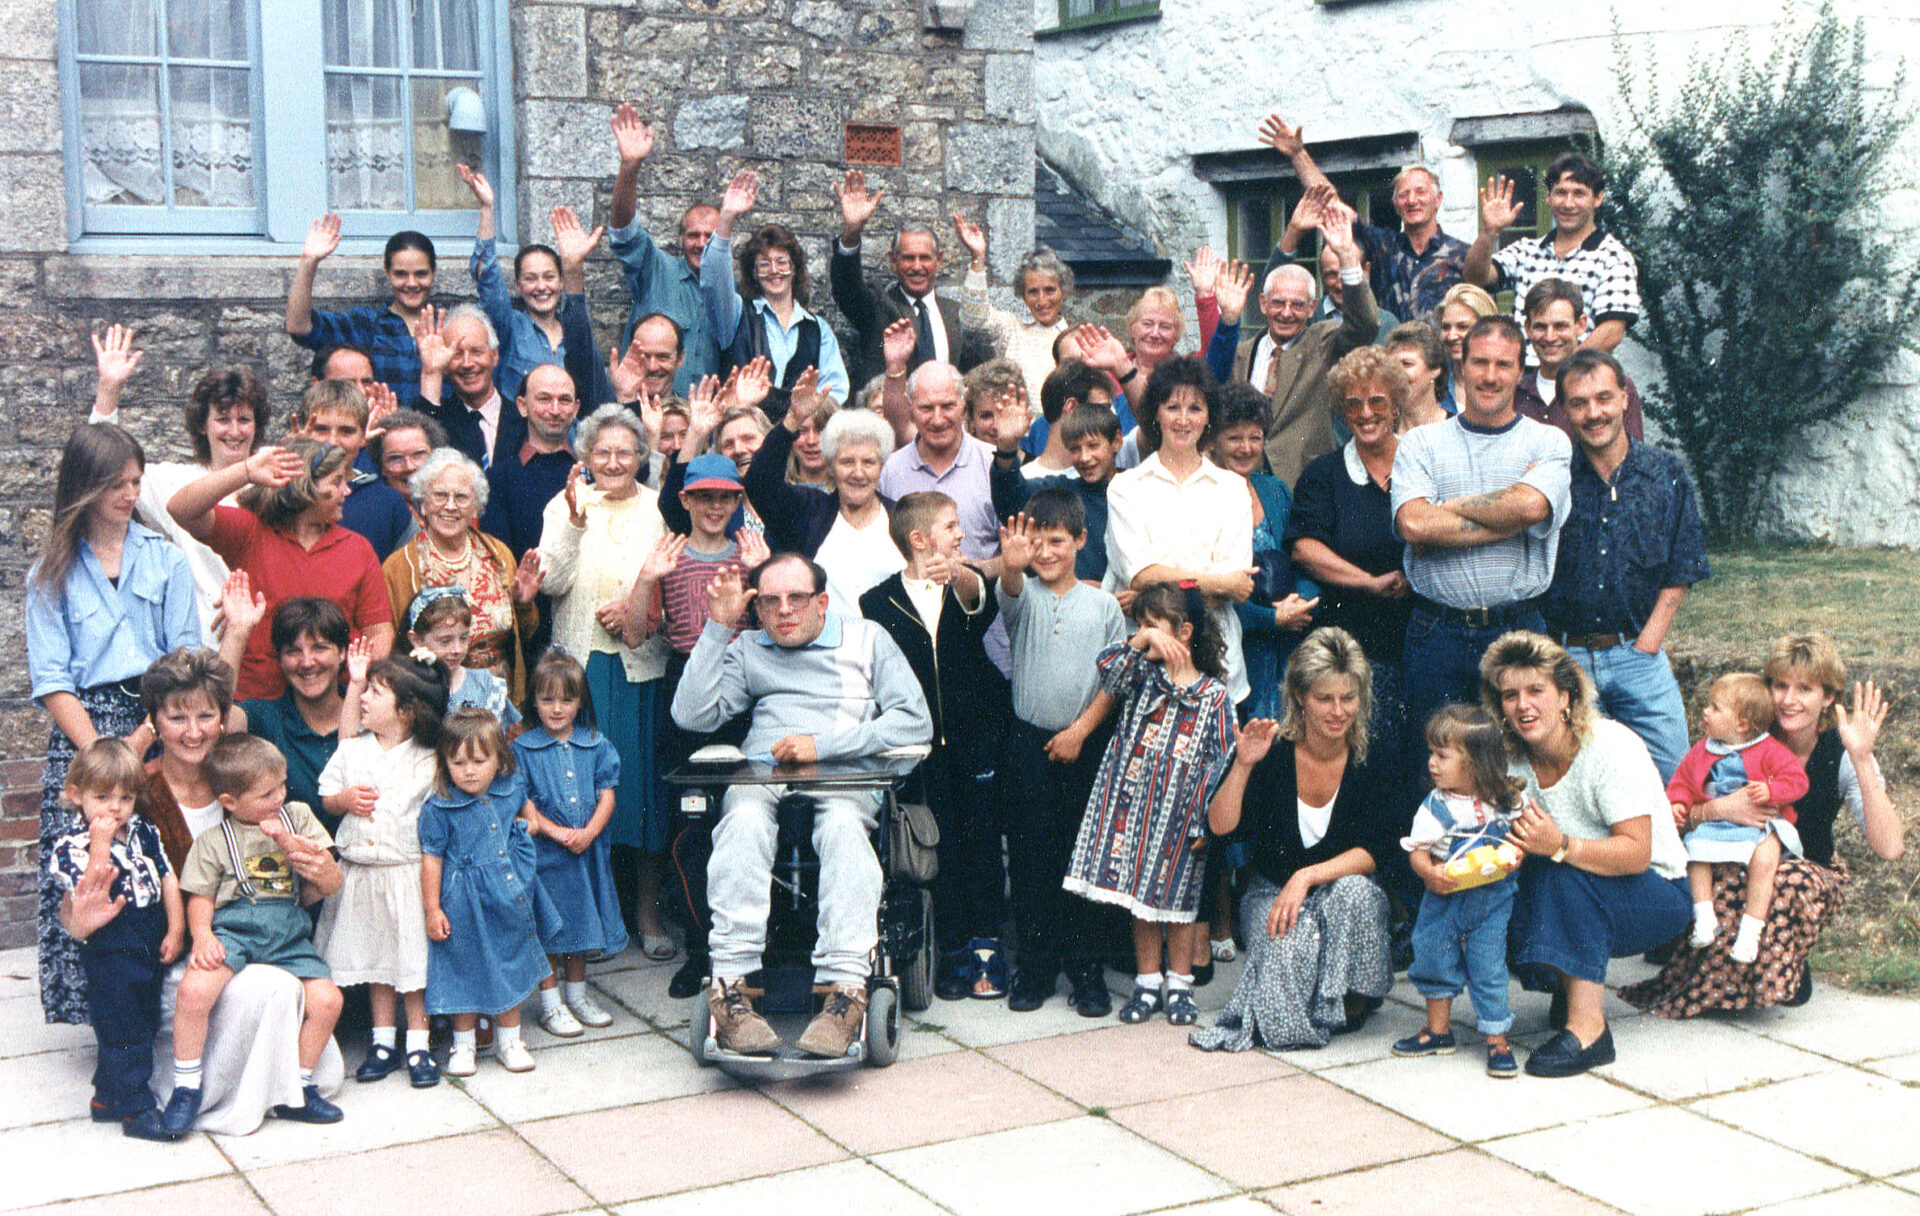 Brian Mortimore loved his Surprise Birthday party at Endacott House. Can you see Erica Loram by Miss/Mrs Harvey ?